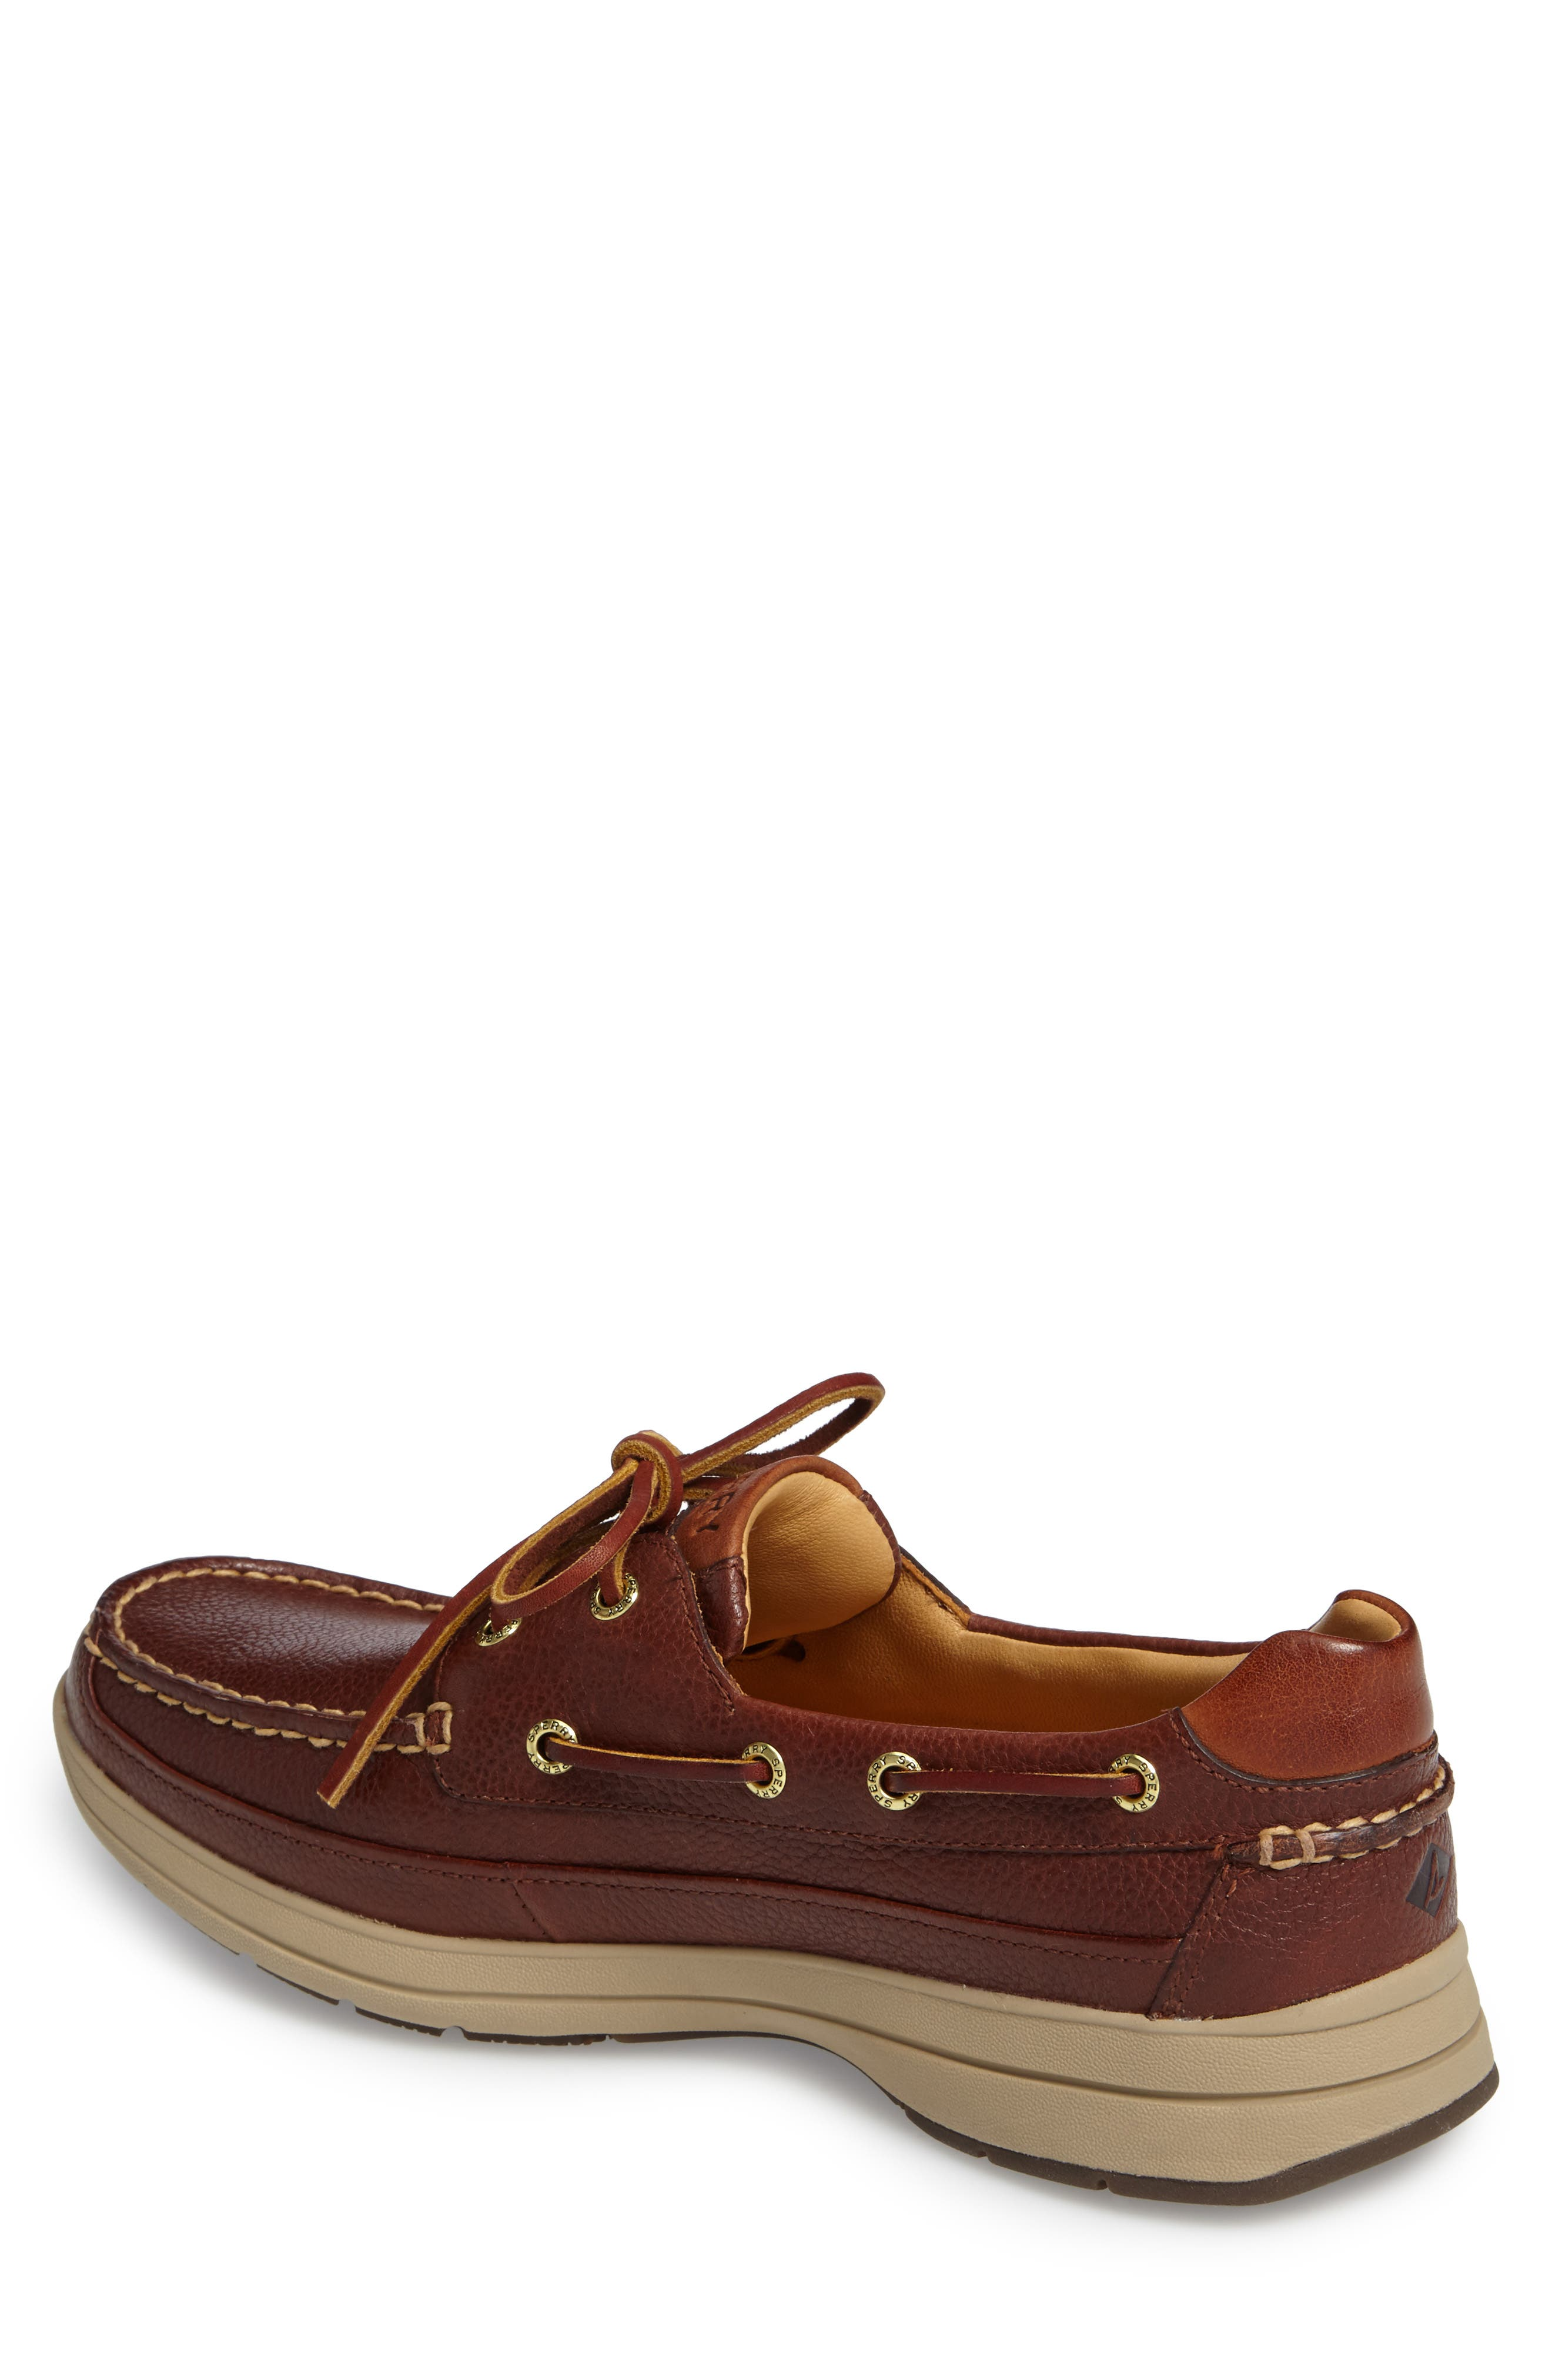 ,                             Gold Cup Ultralite Boat Shoe,                             Alternate thumbnail 6, color,                             202